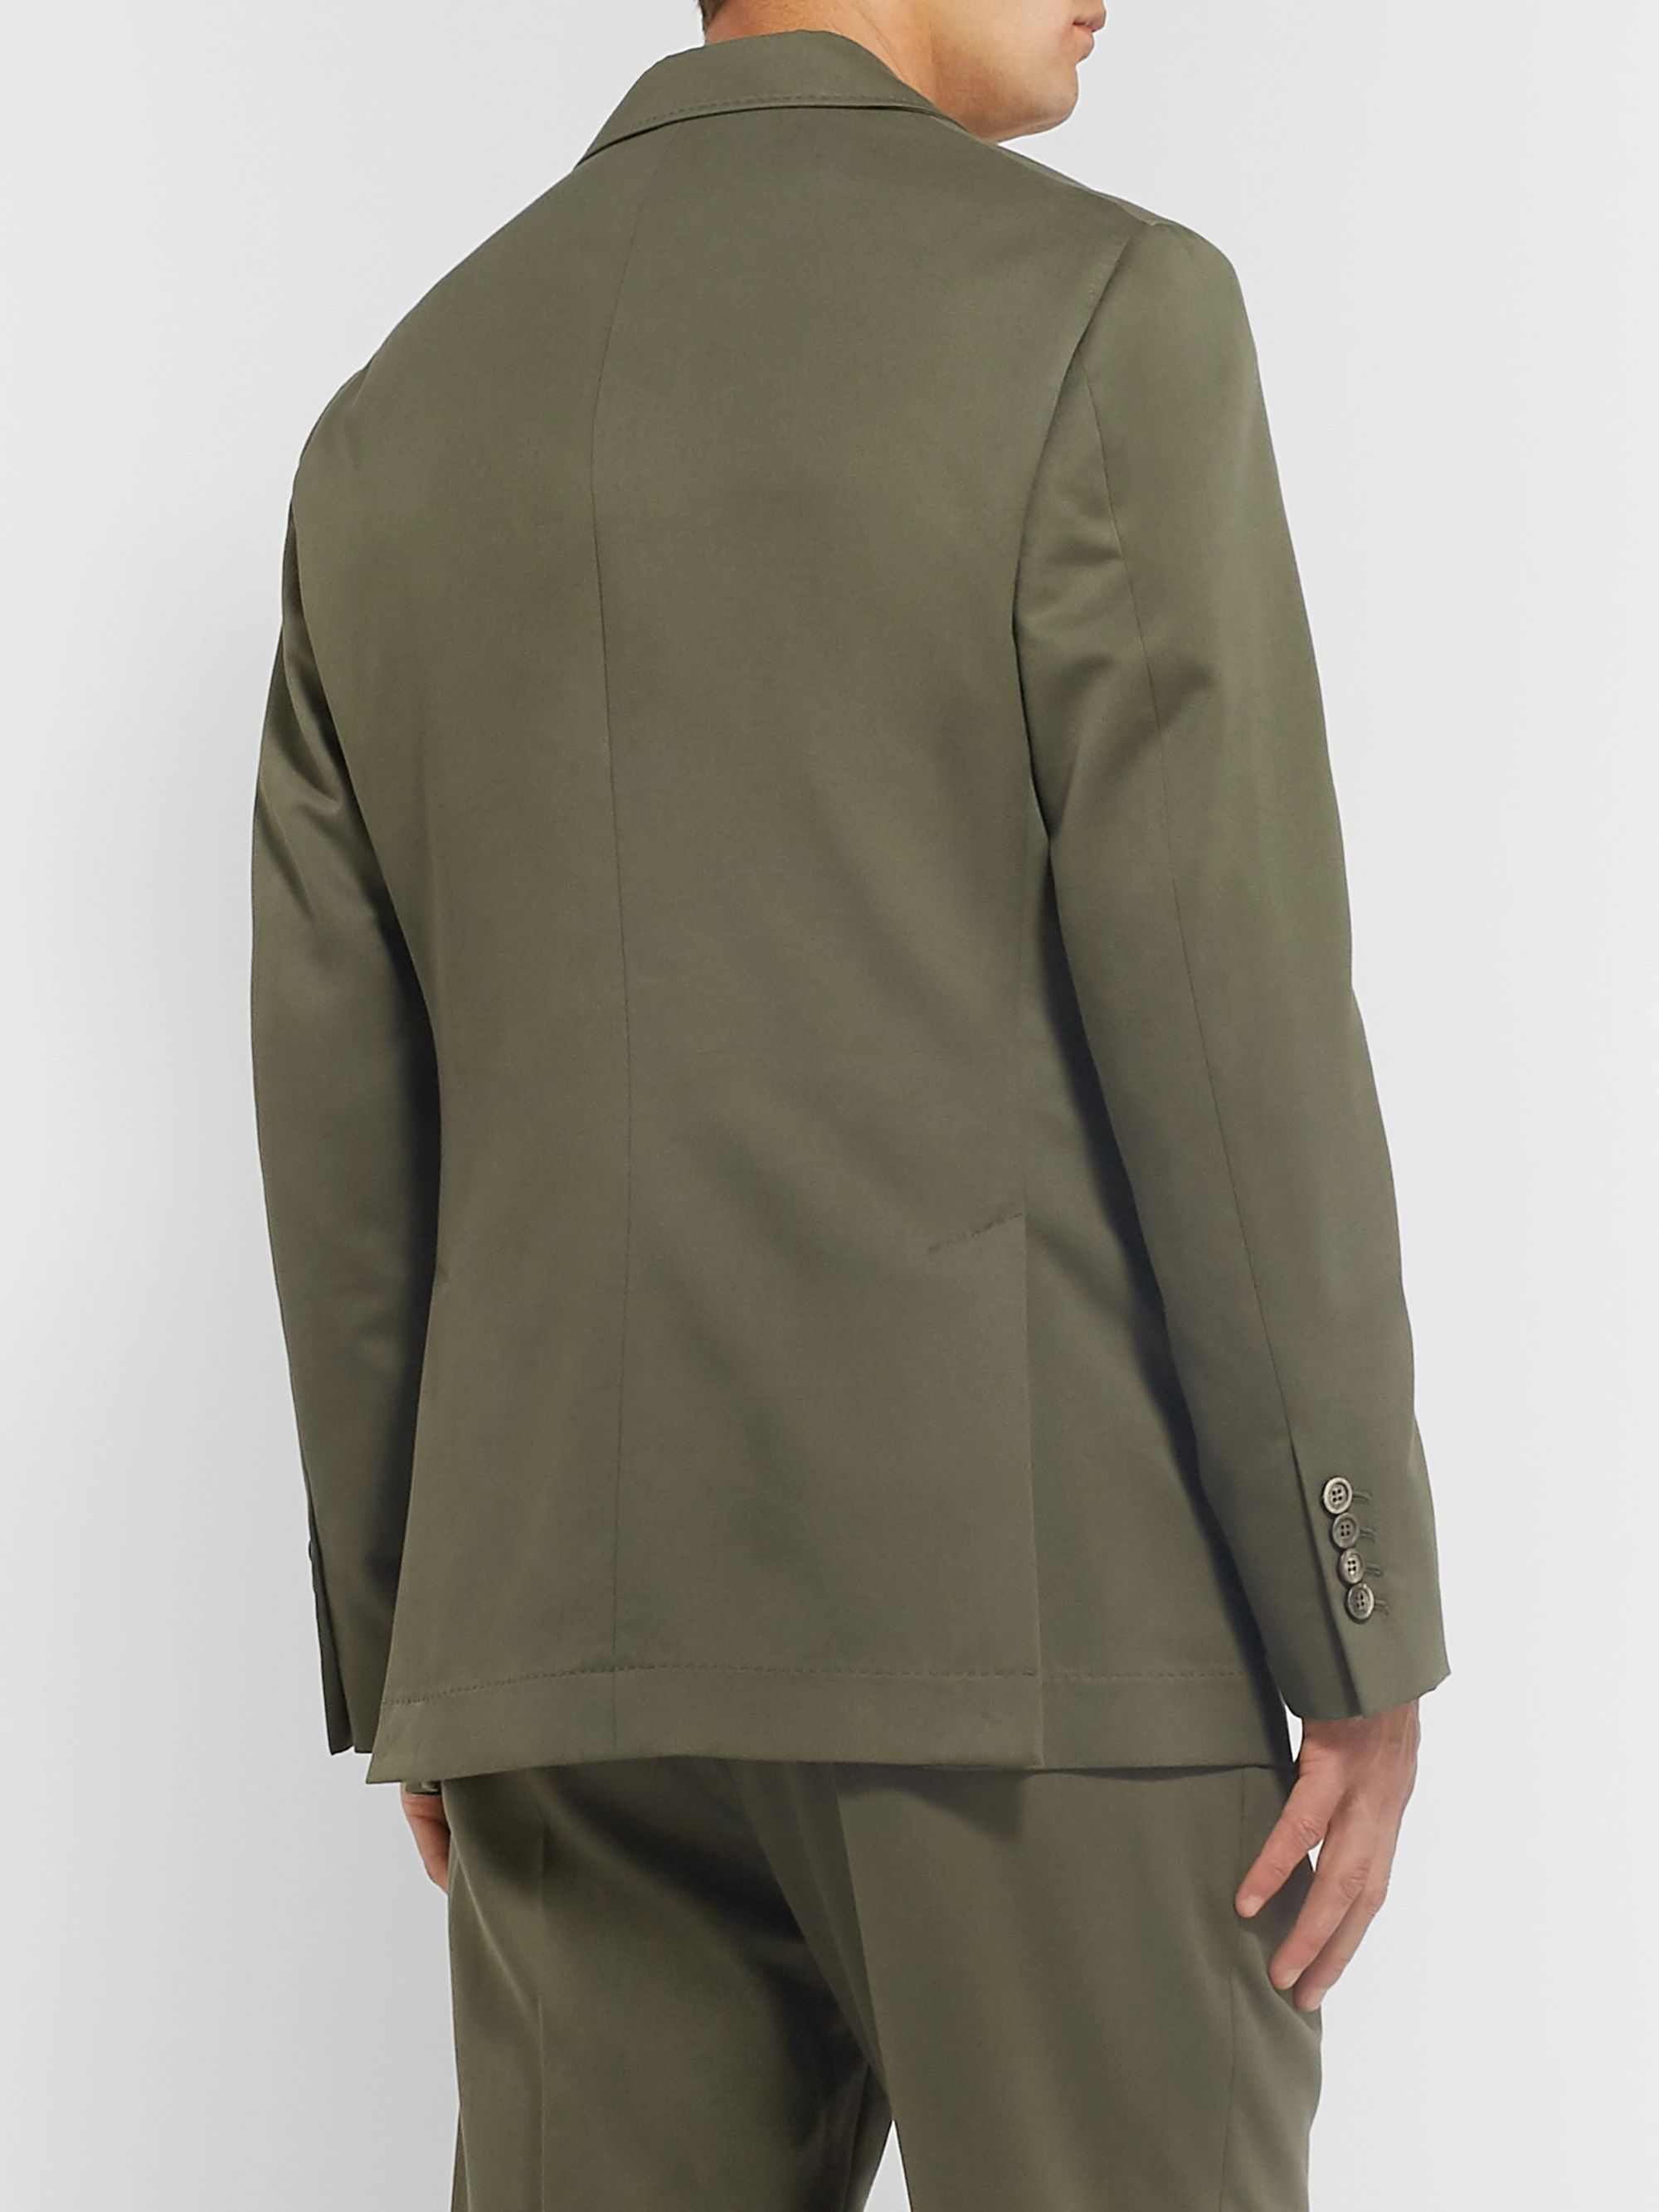 Brunello Cucinelli Army-Green Wool and Cotton-Blend Twill Suit Jacket